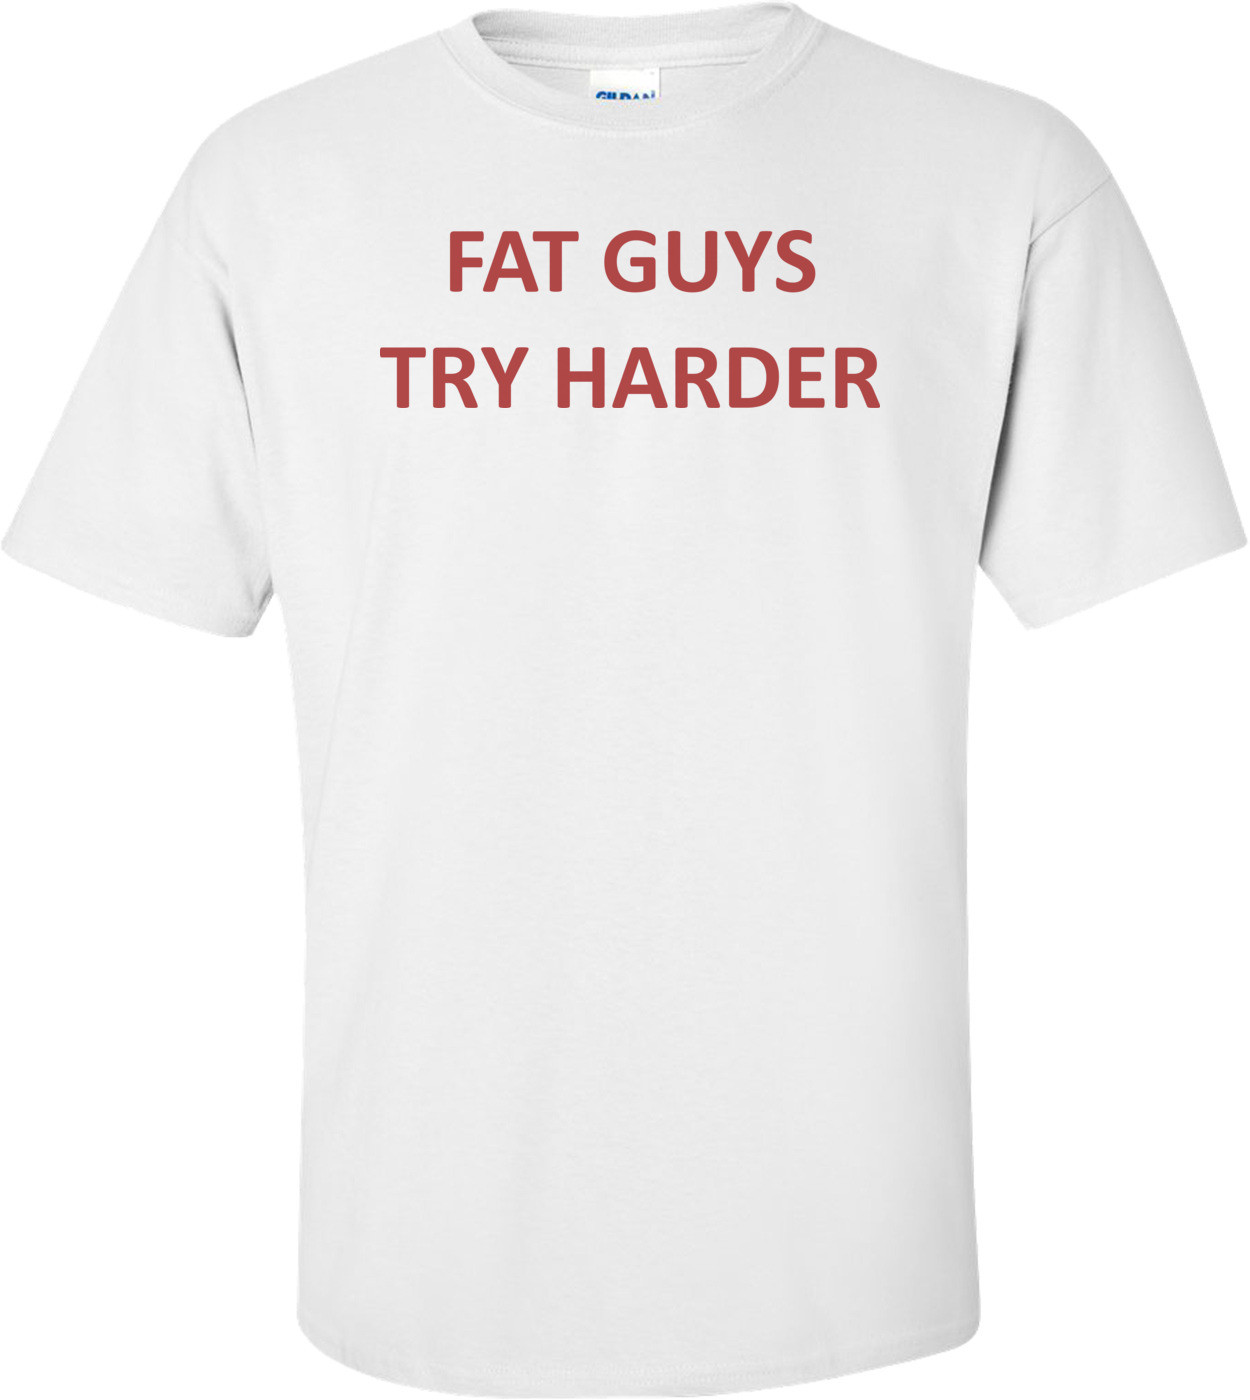 Fat Guys Try Harder Shirt